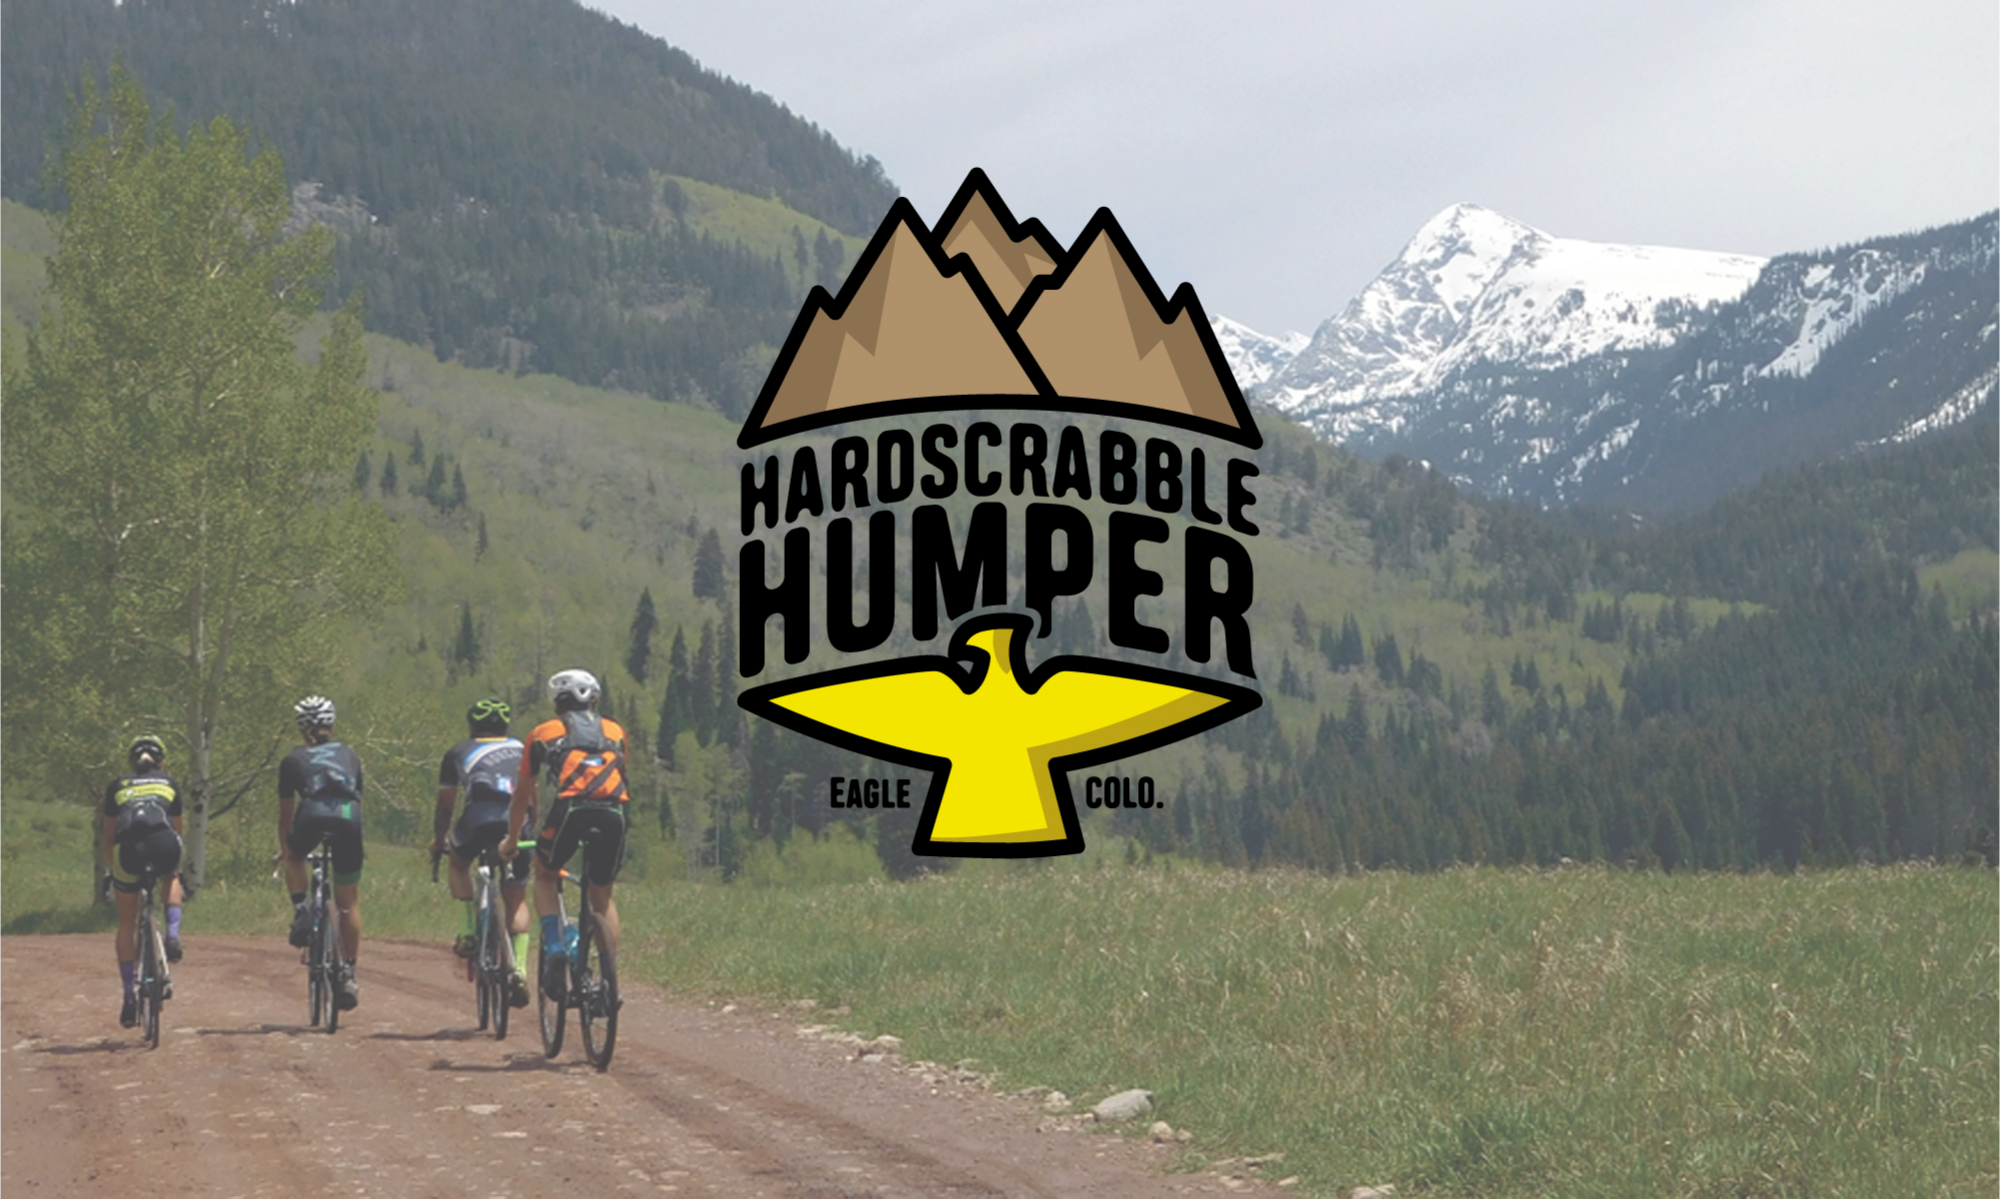 Hardscrabble Humper